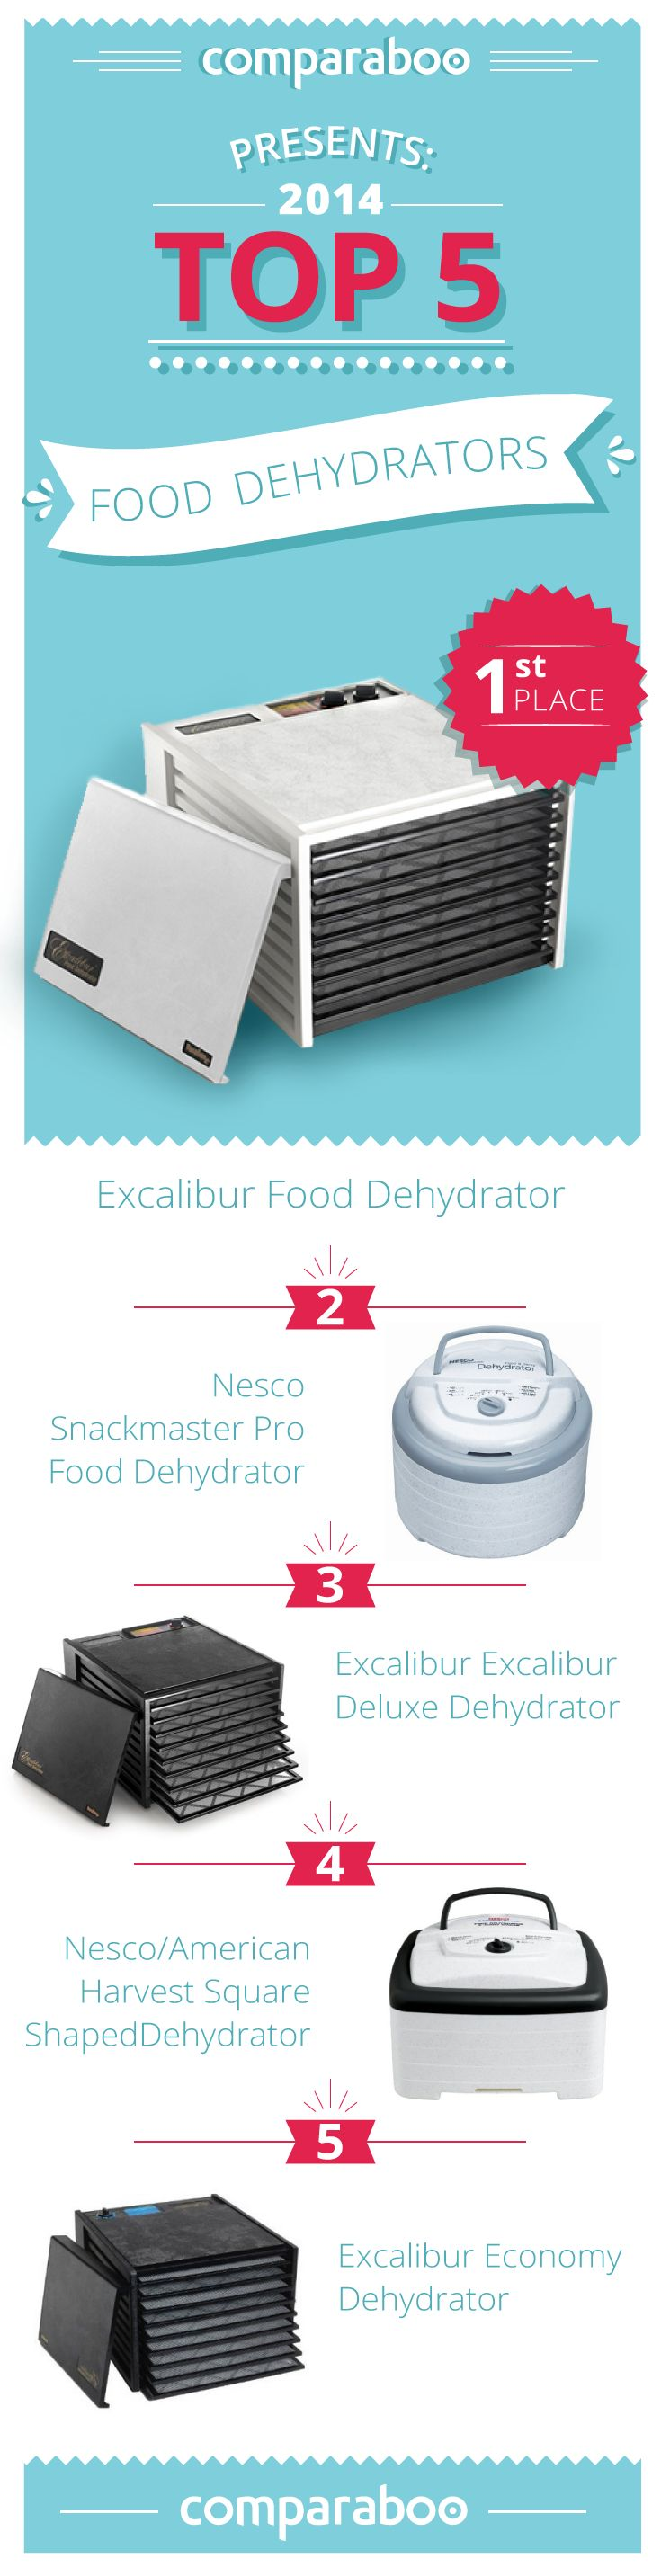 Finding the perfect food dehydrator comes with a lot of decisions: removable shelves vs stackable trays, small vs big size, base-mounted fan vs rear-mounted fan vs convection drying, and so on! That's why Comparaboo has compiled a list of top 10 food dehydrators: http://www.comparaboo.com/food-dehydrators #dehydrate